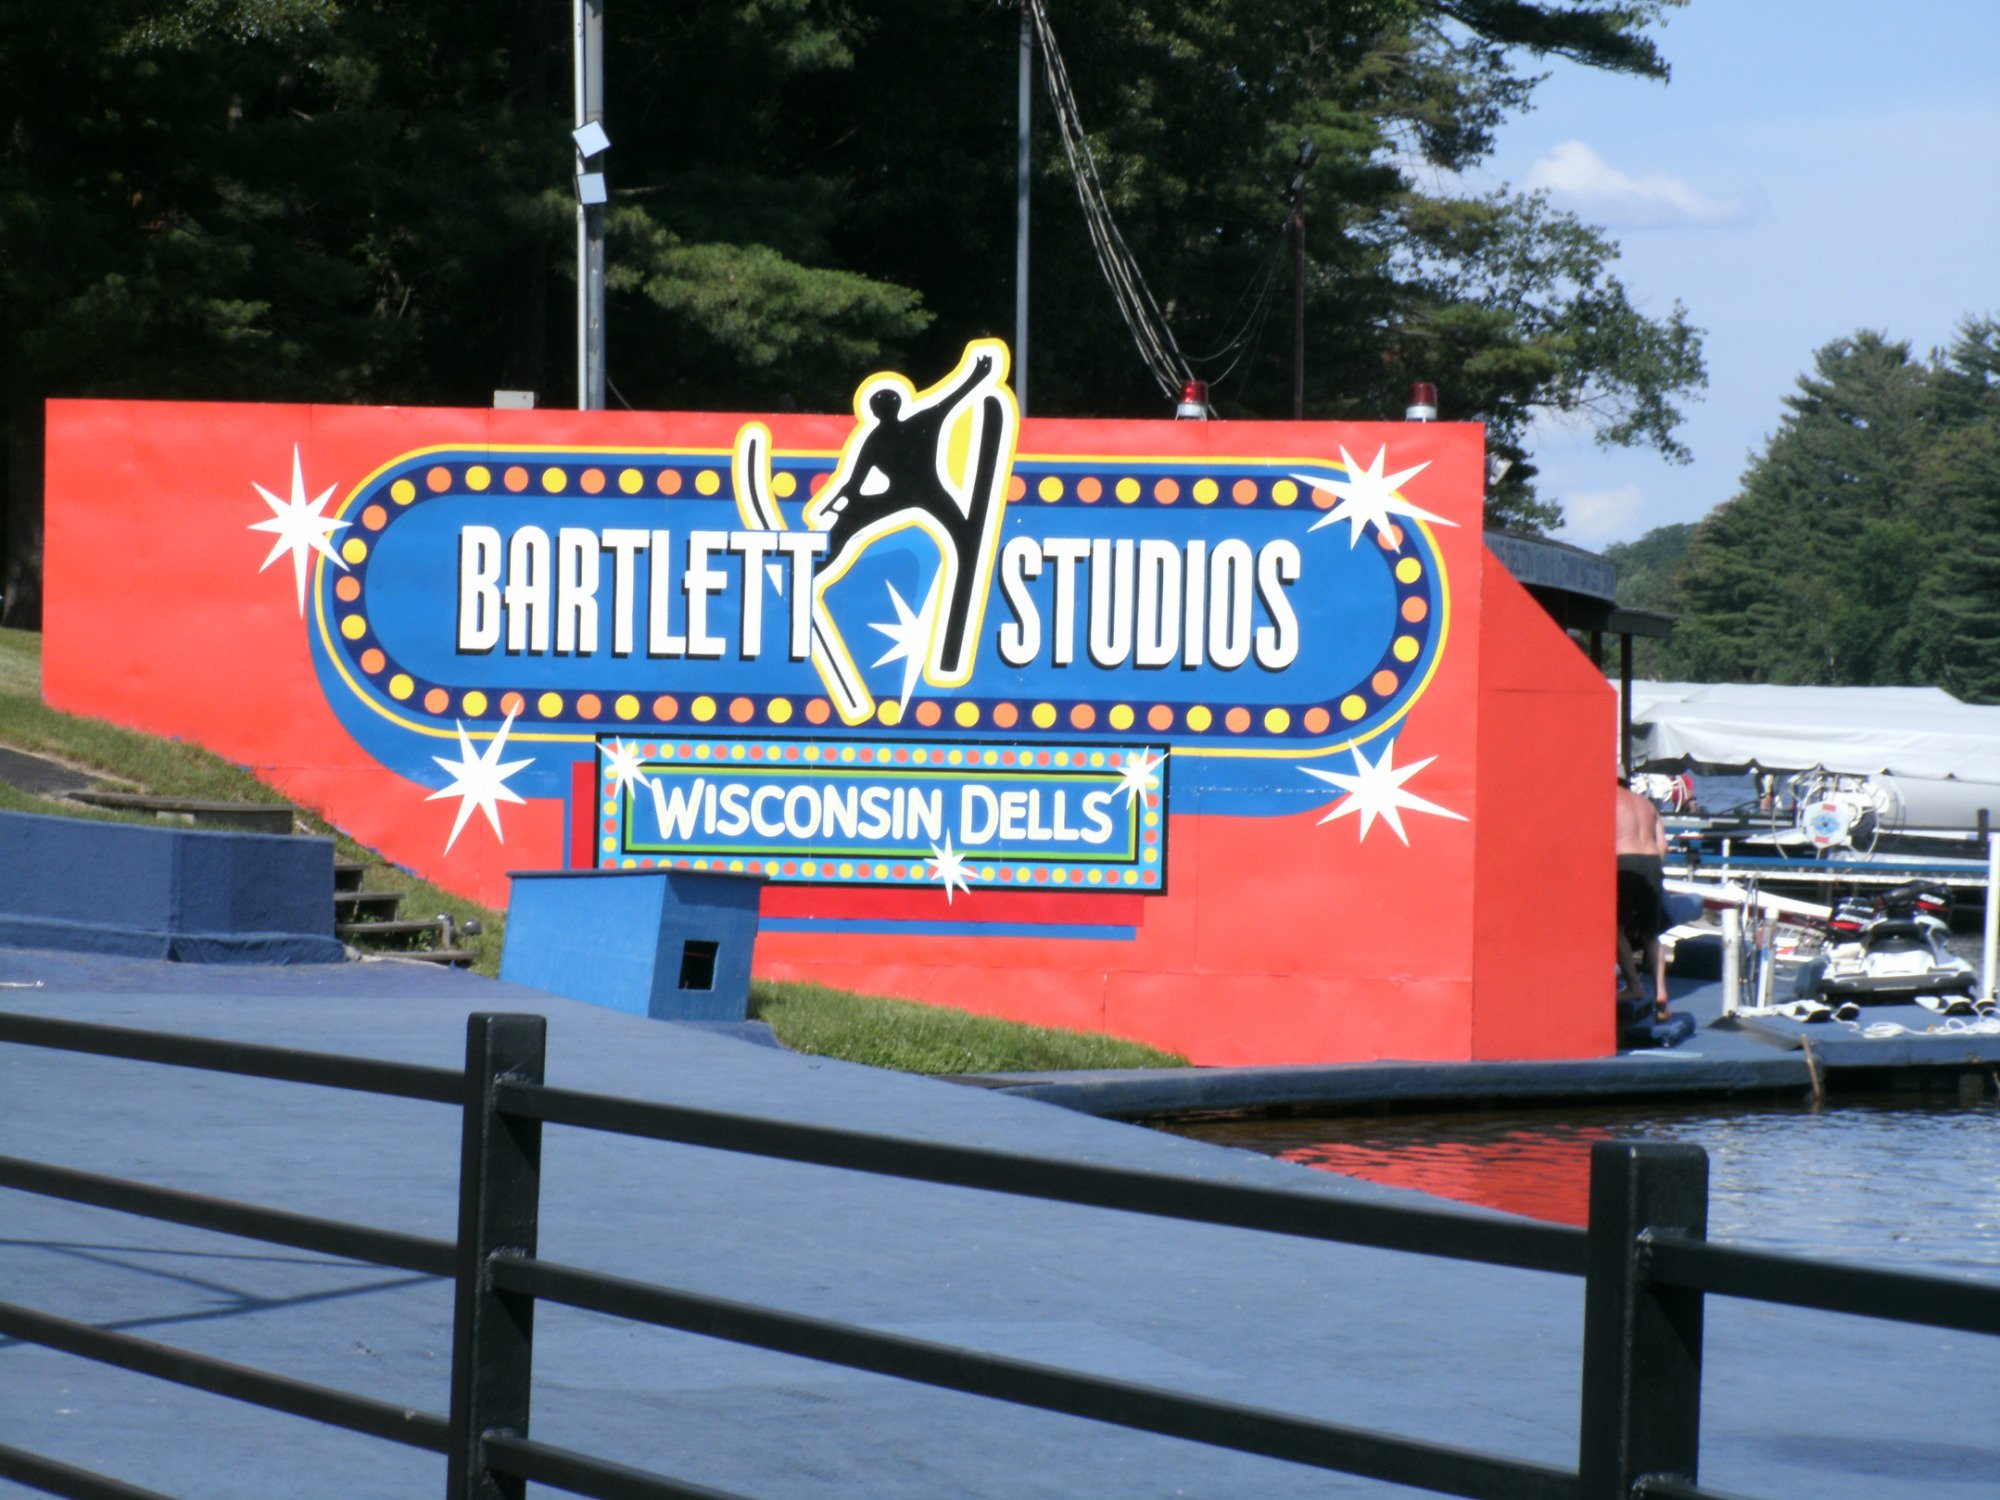 Bartlett Studios is a very good show here. Enjoy it very well.